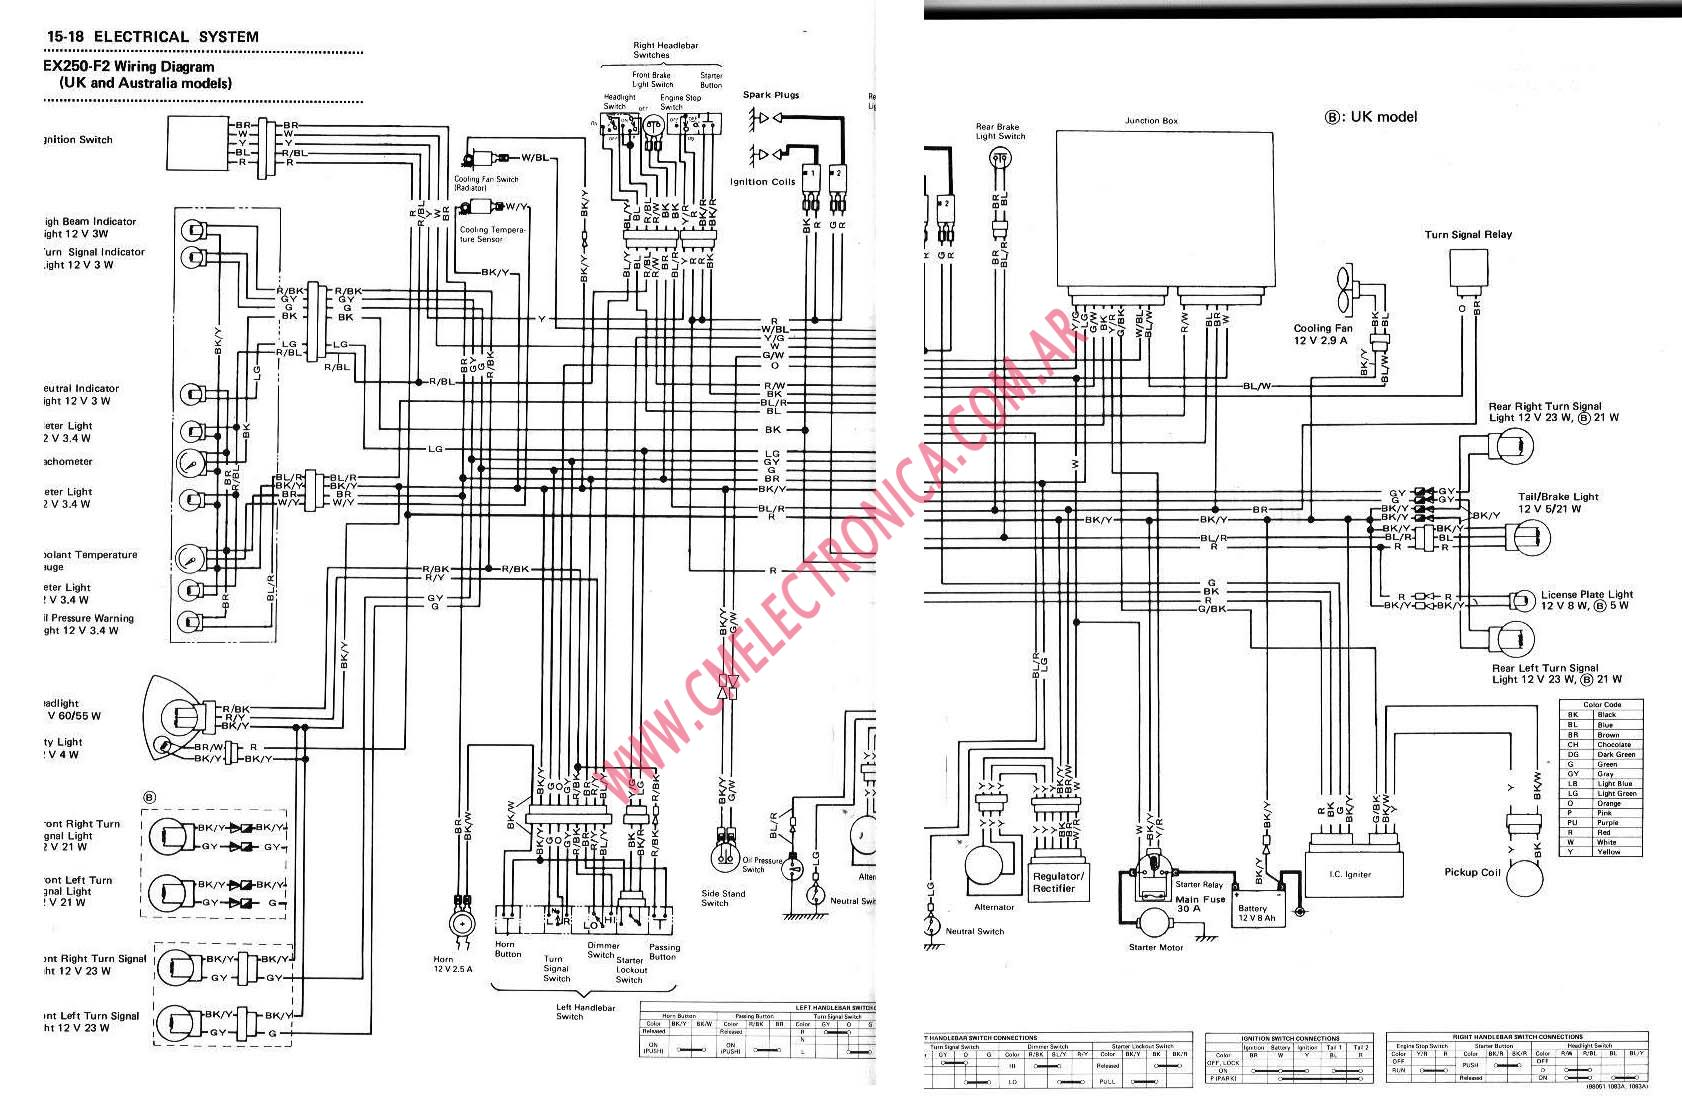 39420 likewise Float Switch Wiring Diagram Boat likewise Baxi System Boiler Wiring Diagram in addition Wiring Diagram For Sg Guitar besides Kc3300 Relay Wiring Diagram. on dodge ram trailer wiring diagram for table